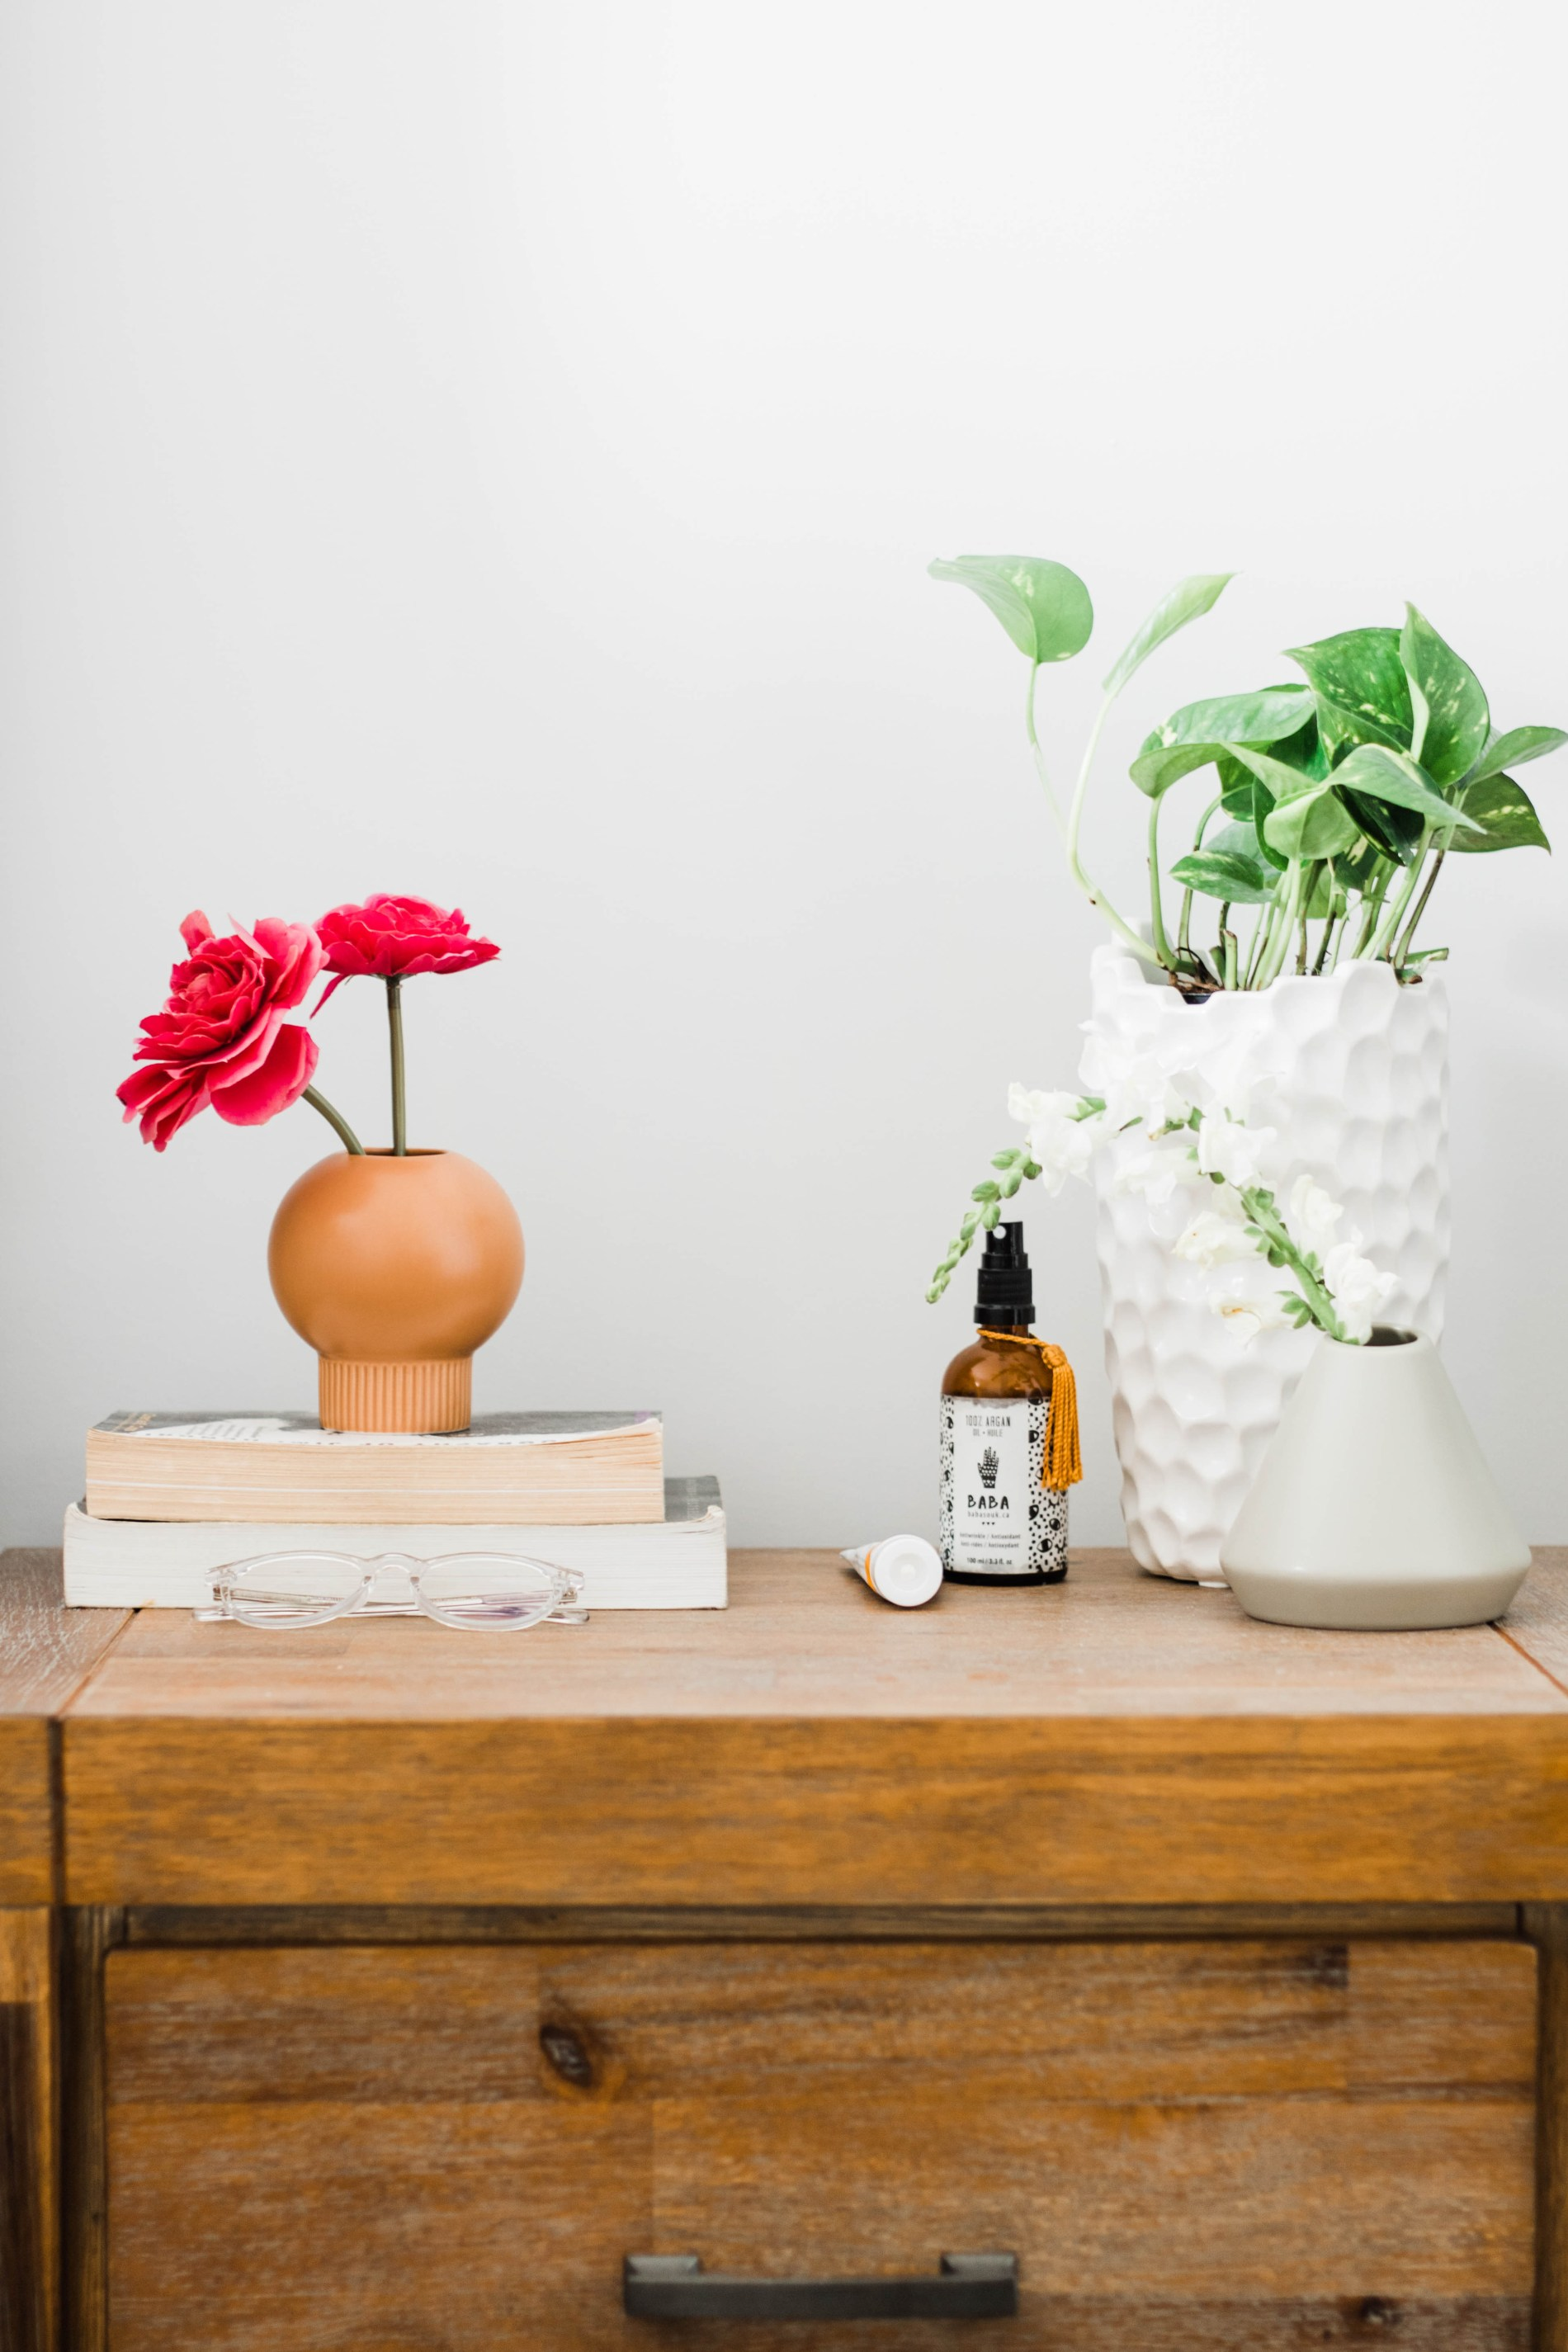 Styling a Bedside Table: A minimalist Approach #homestyle #homedecor #bedroom